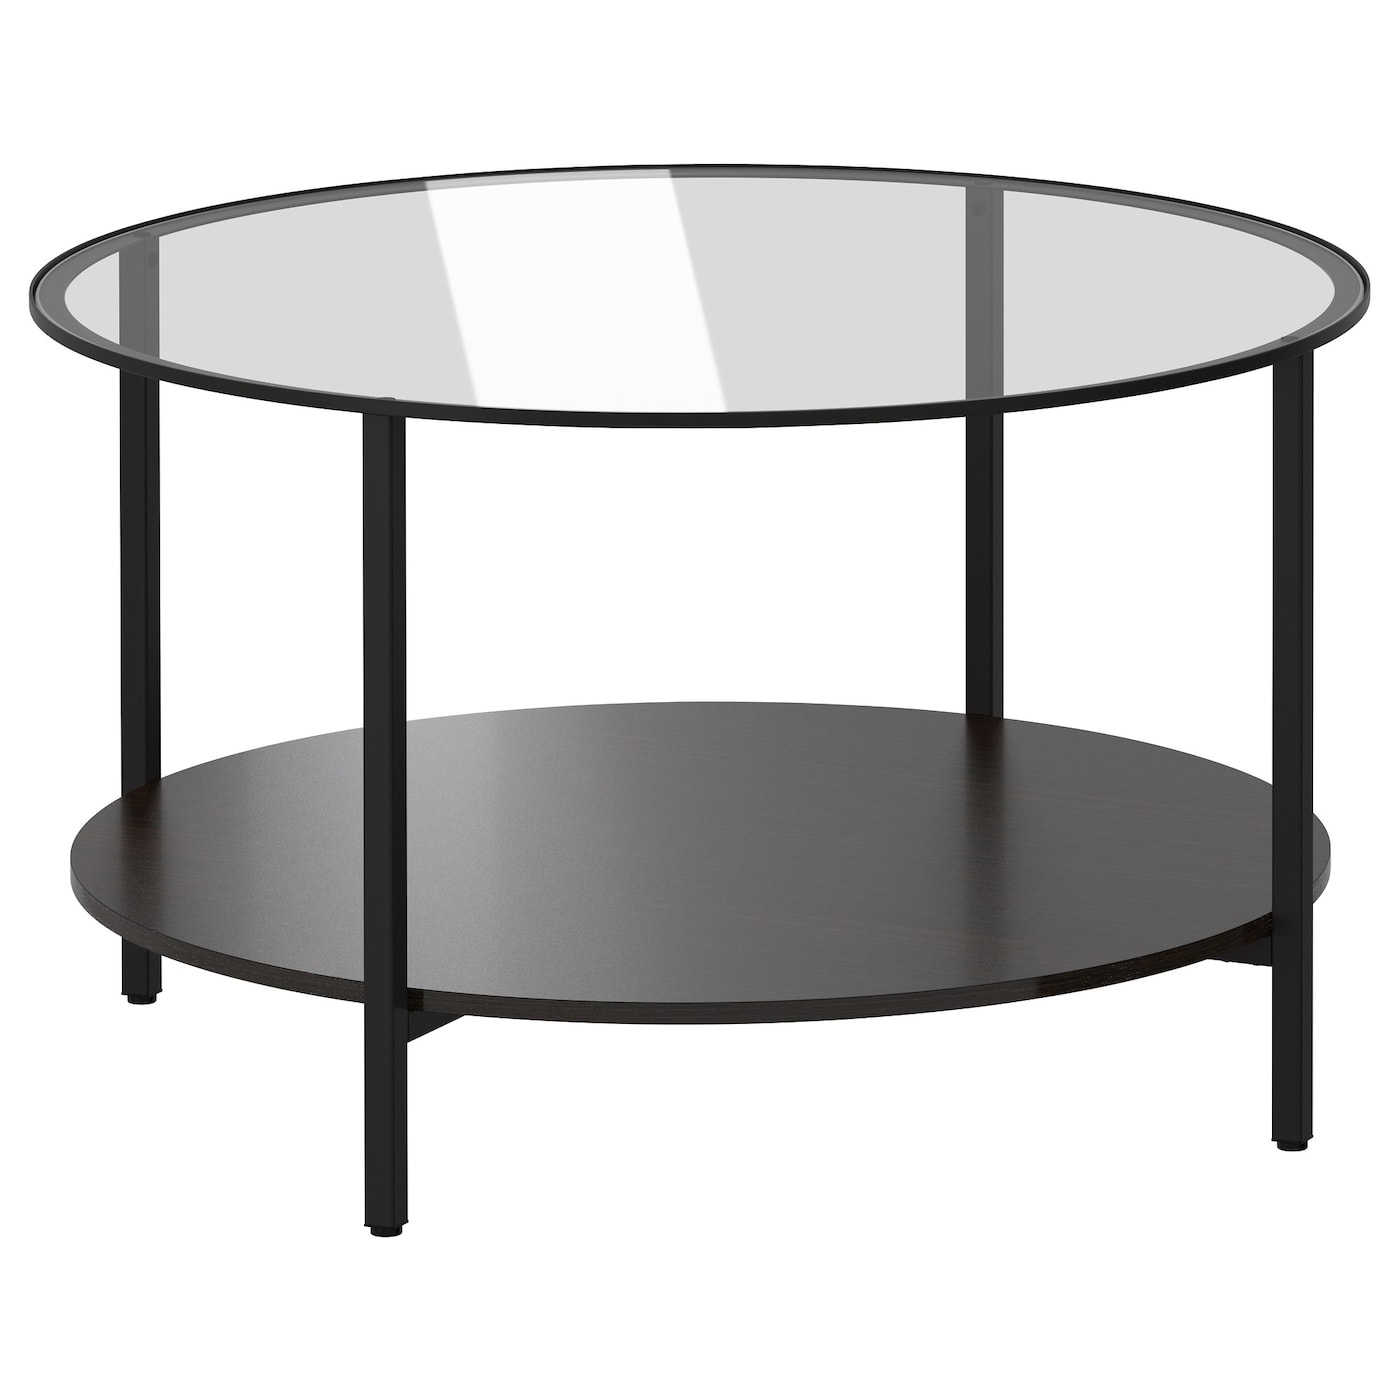 Vittsj coffee table black brown glass 75 cm ikea for Ikea glass table tops